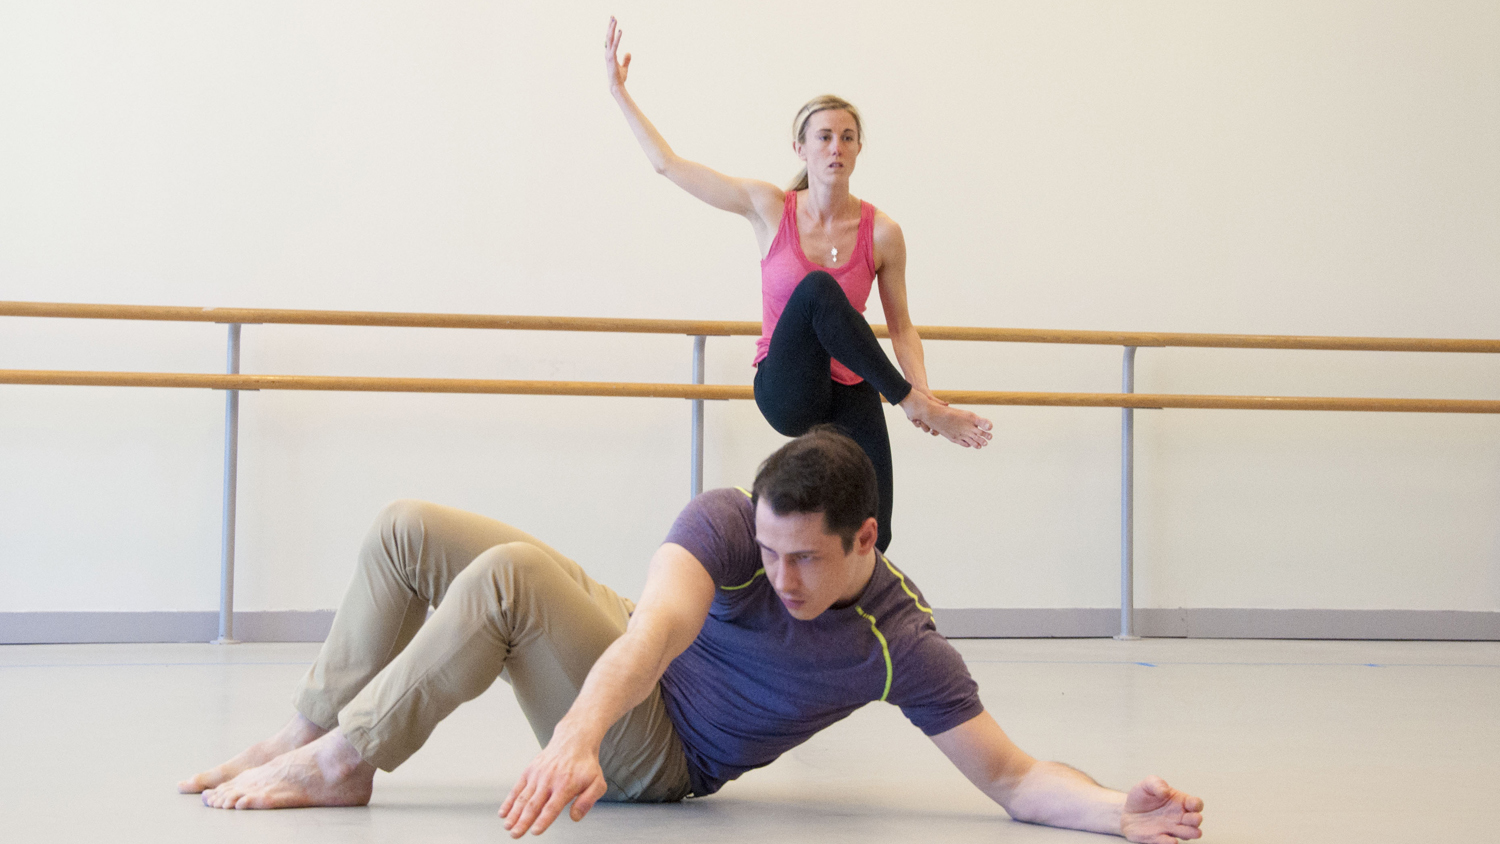 Check out these photos from a rehearsal of Liz Gerring Dance Company